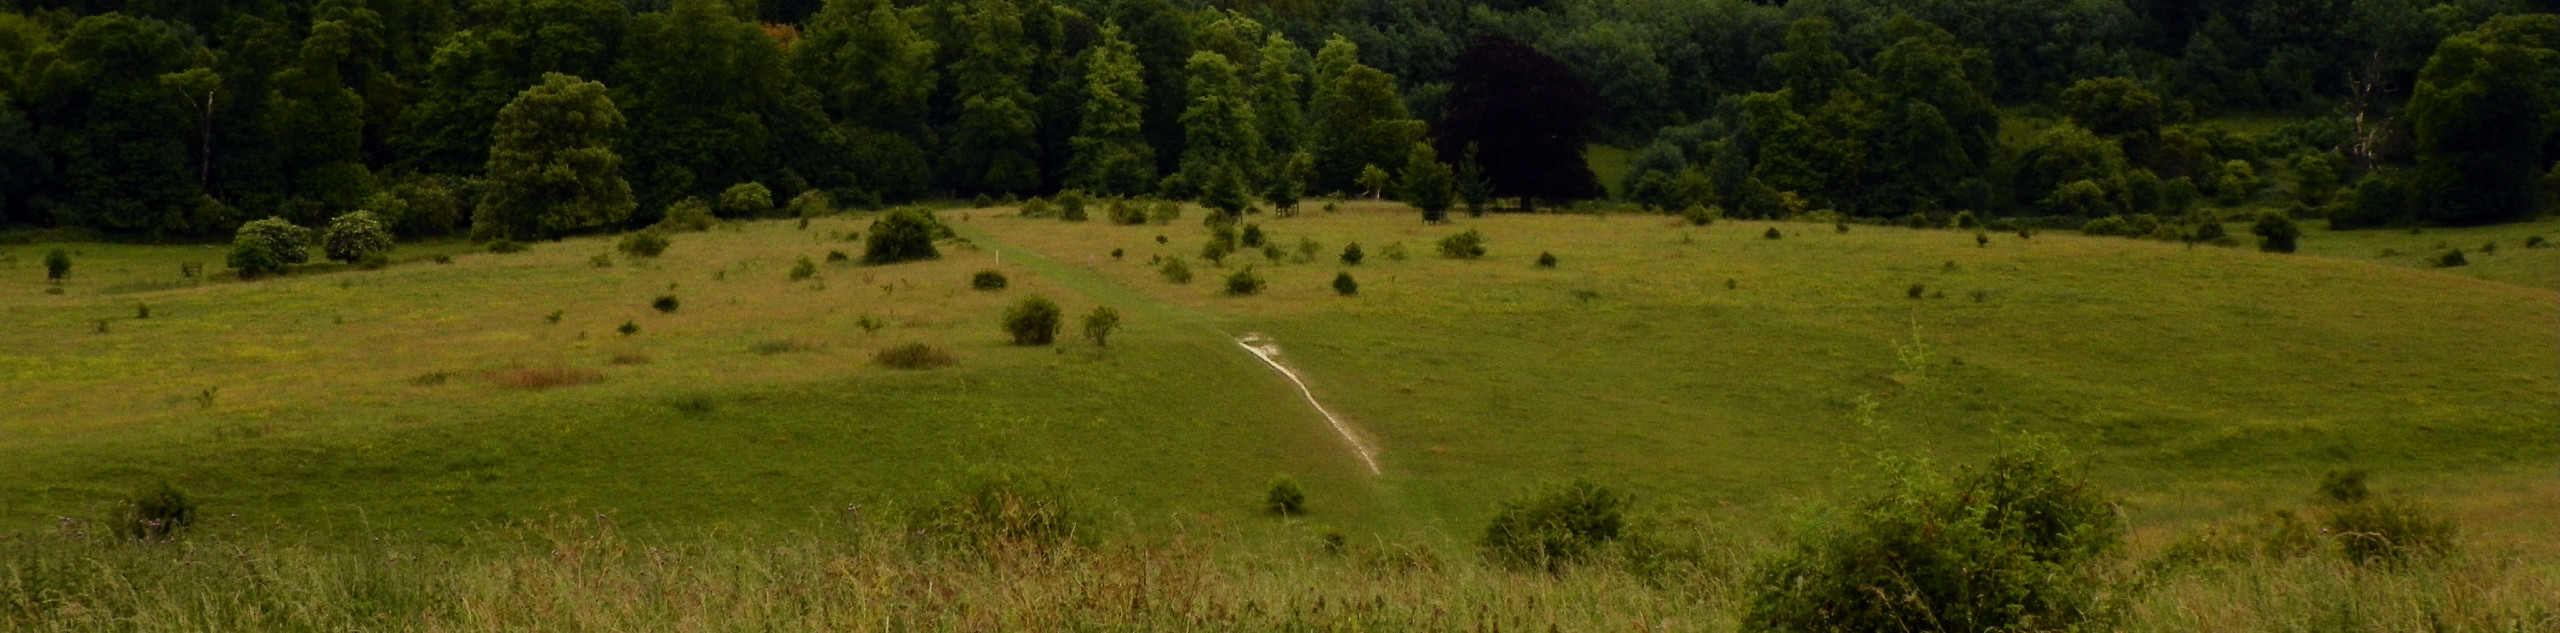 Wendover to Tring Park Walk